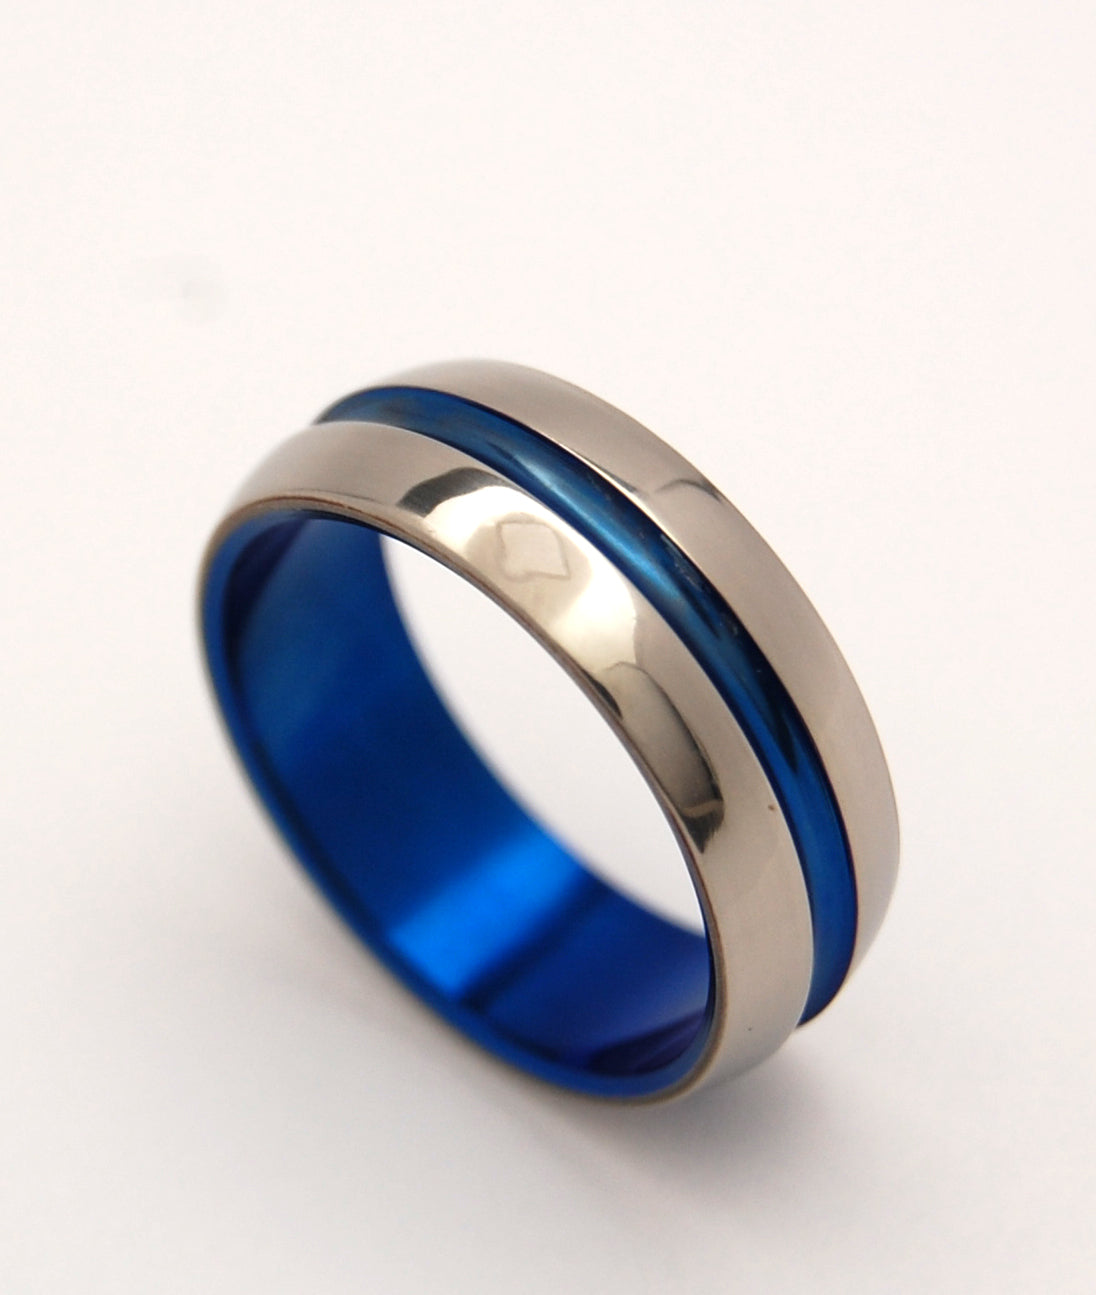 Men's Titanium Wedding Band - Handcrafted Wedding Rings | DOMED BLUE SIGNATURE RING